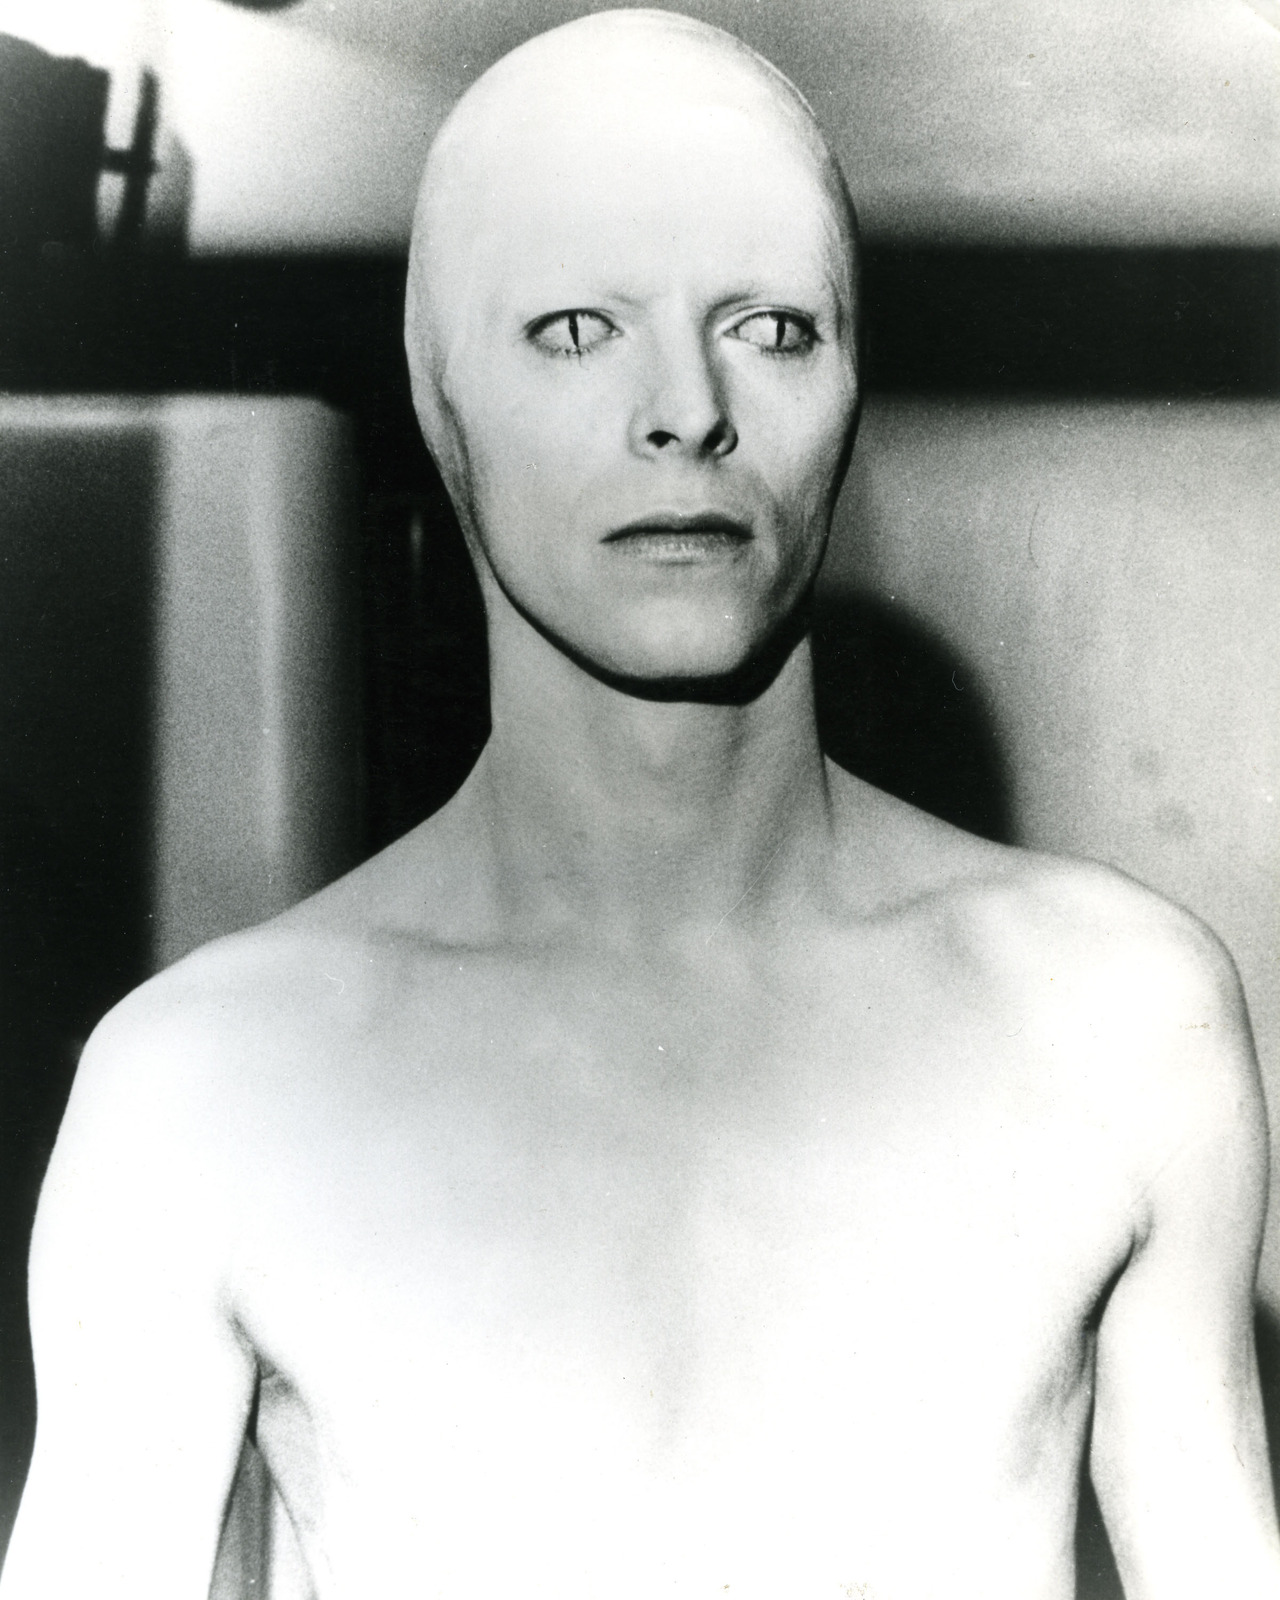 BADT6D THE MAN WHO FELL TO EARTH 1976 British Lion film with David Bowie